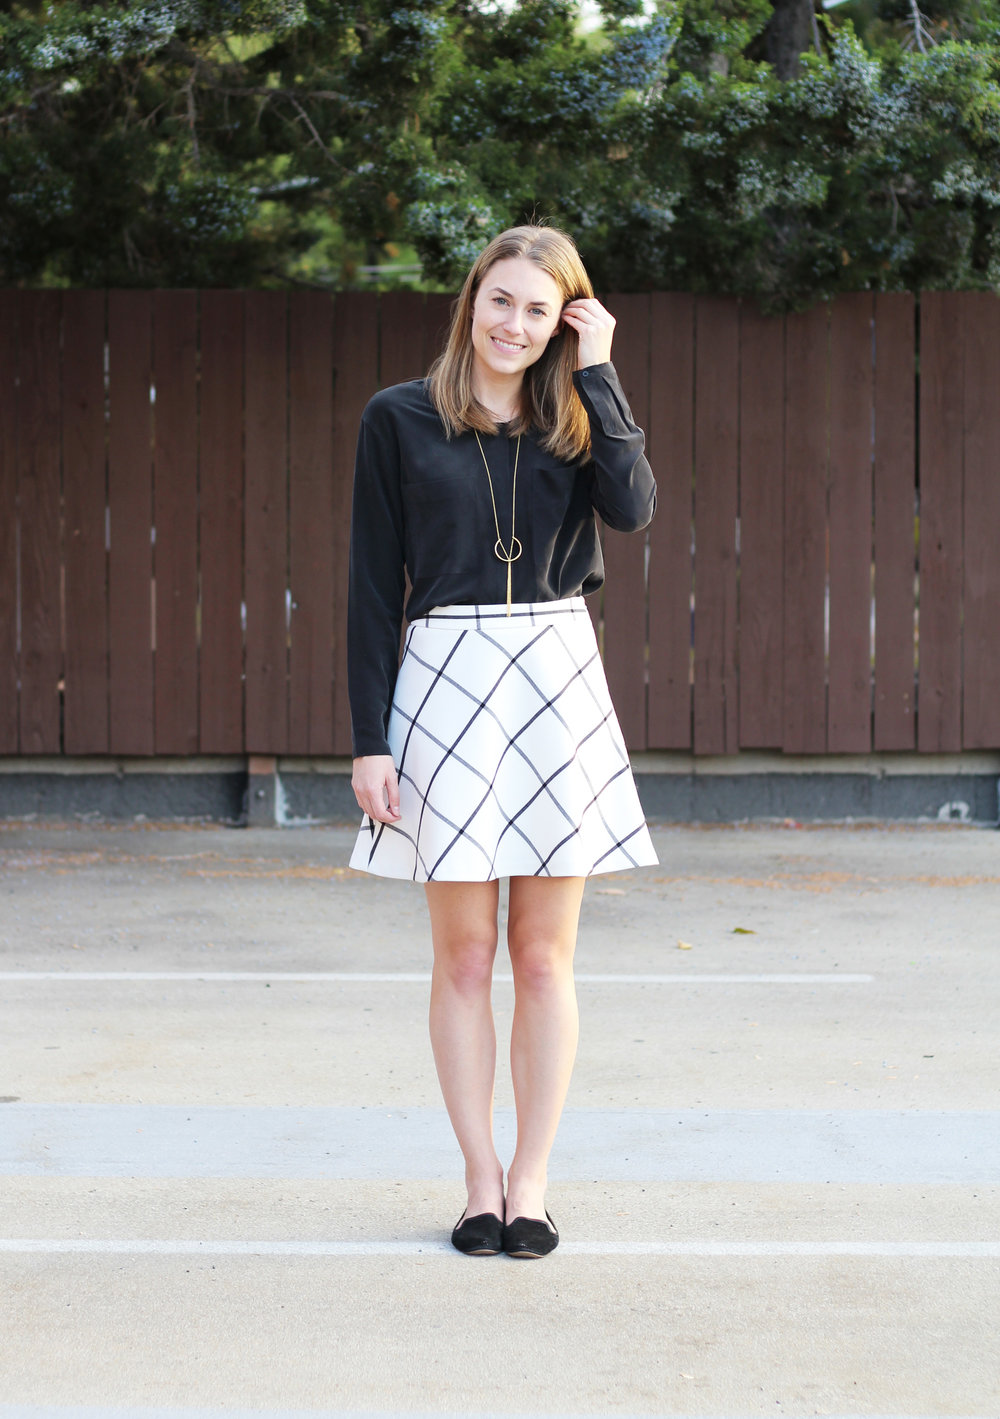 Windowpane skirt outfit with black silk top, black loafers, pendant necklace — Cotton Cashmere Cat Hair